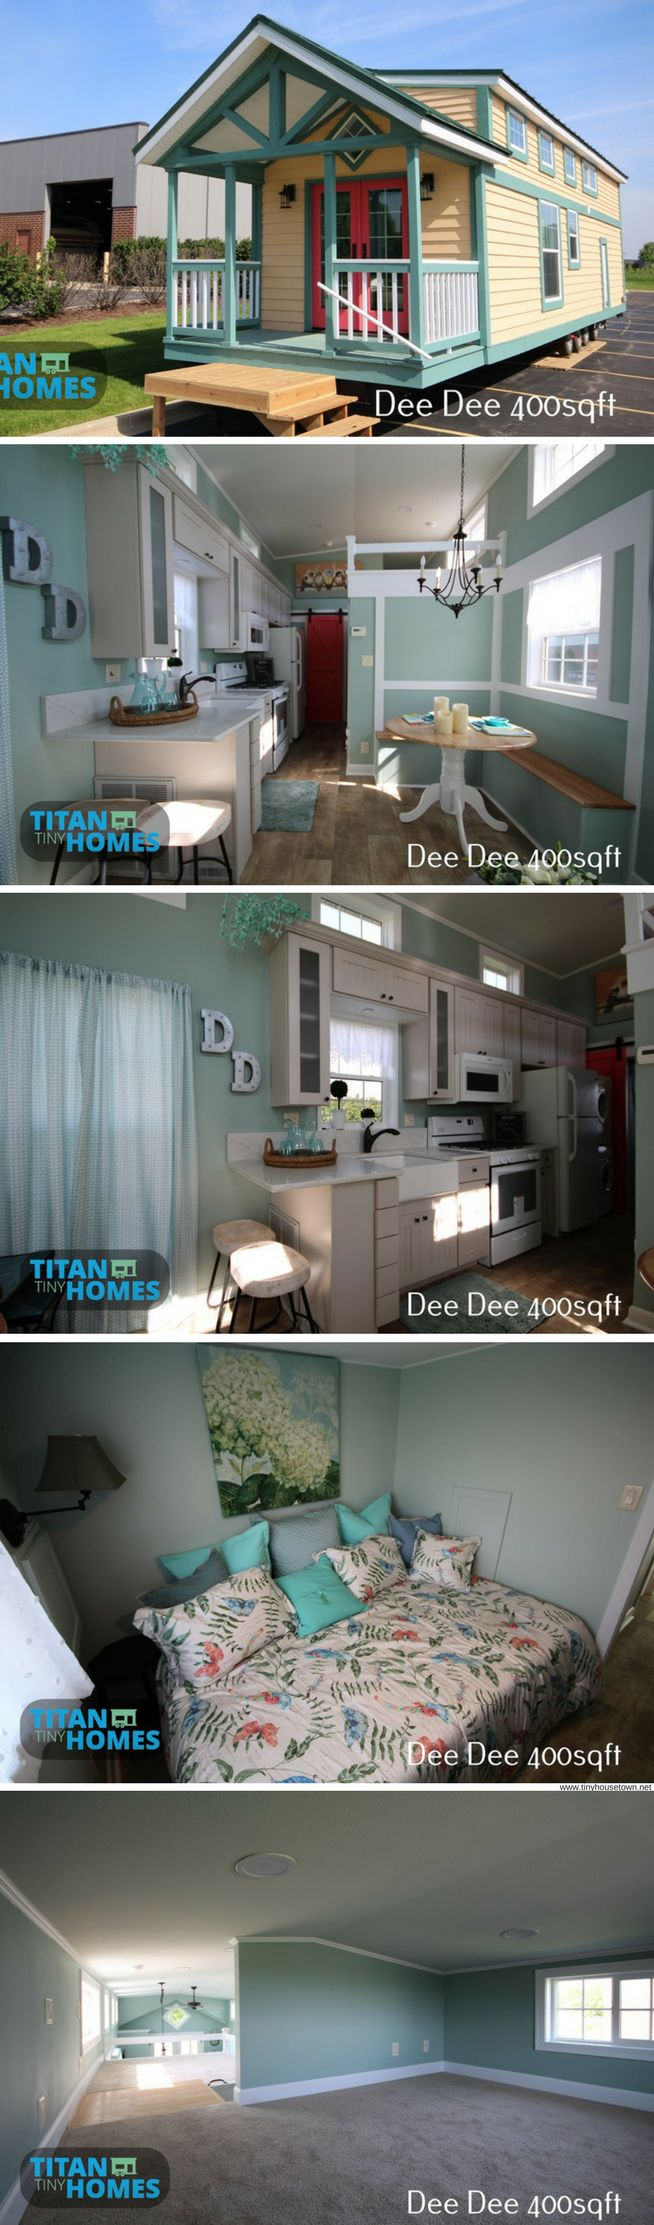 The Dee Dee: the perfect home for those looking to downsize without going too tiny! It features a wide, open layout with 400 sq ft of space and two bedrooms! Designed and built by Titan Tiny Homes